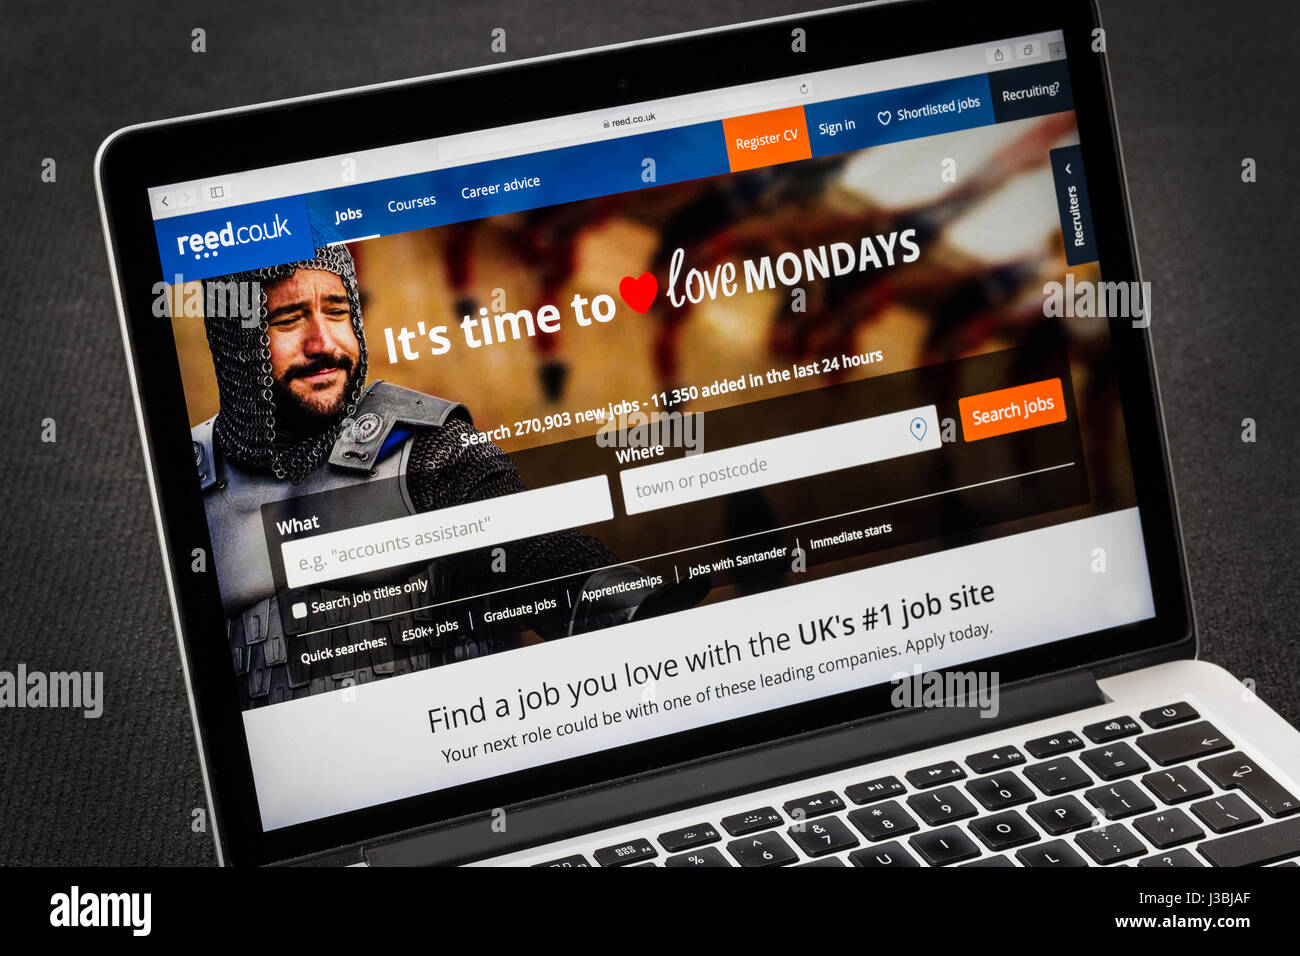 Reed website for finding jobs online - Stock Image